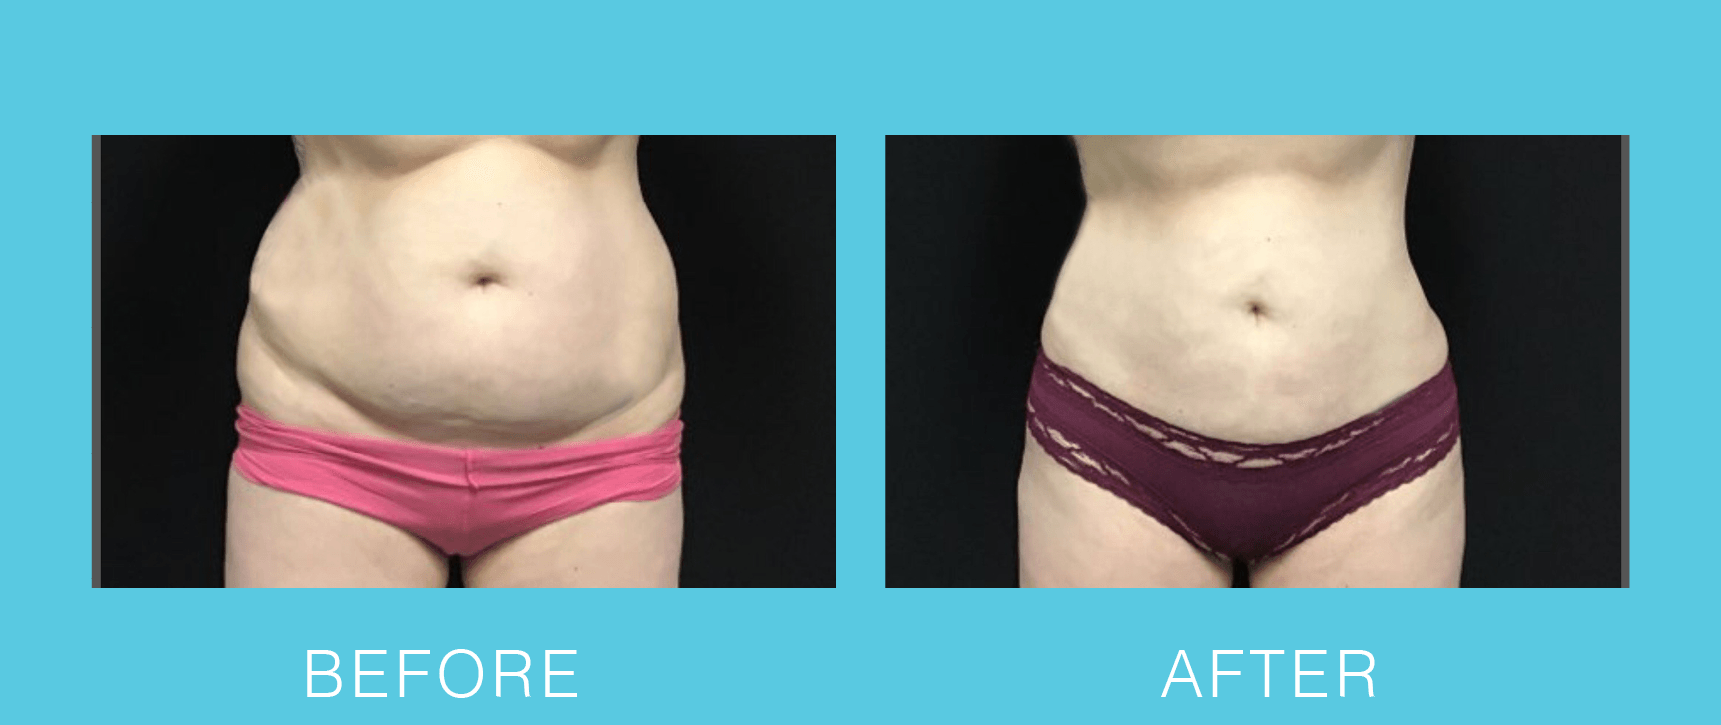 Abdominal and Hips Liposuction